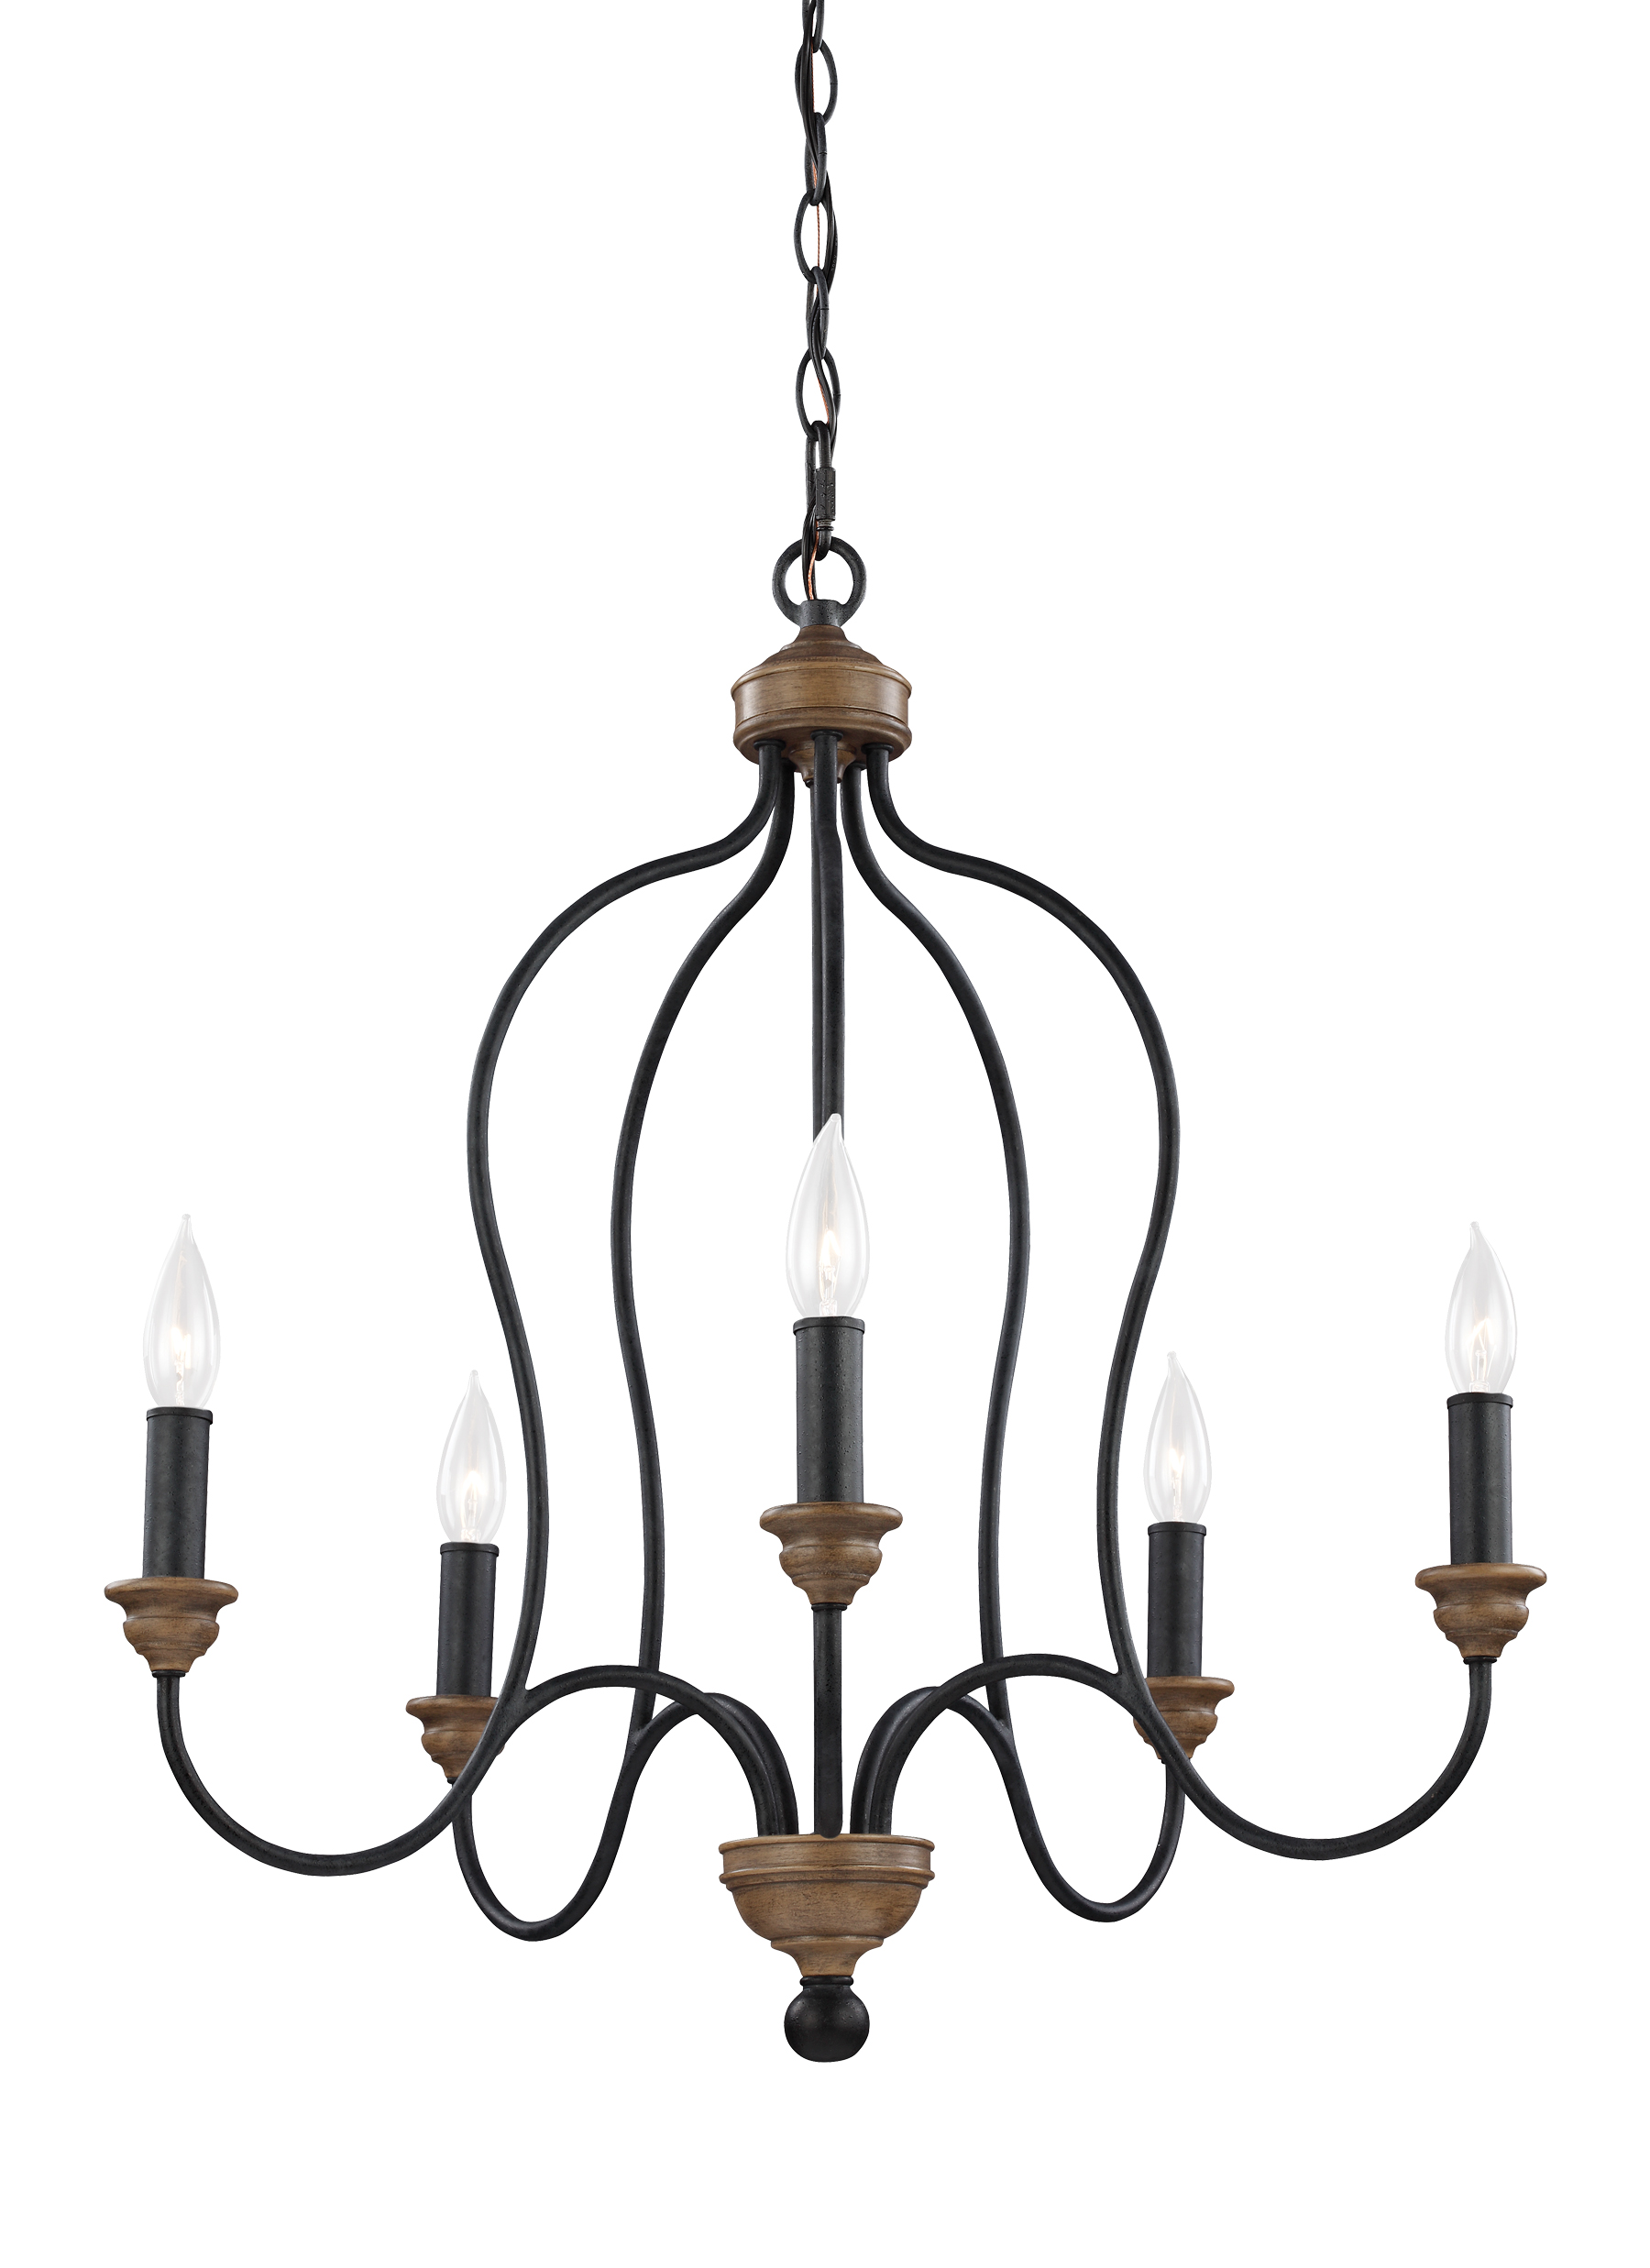 F29985dwzwo5 light chandelierdark weathered zinc weathered oak loading zoom mozeypictures Image collections